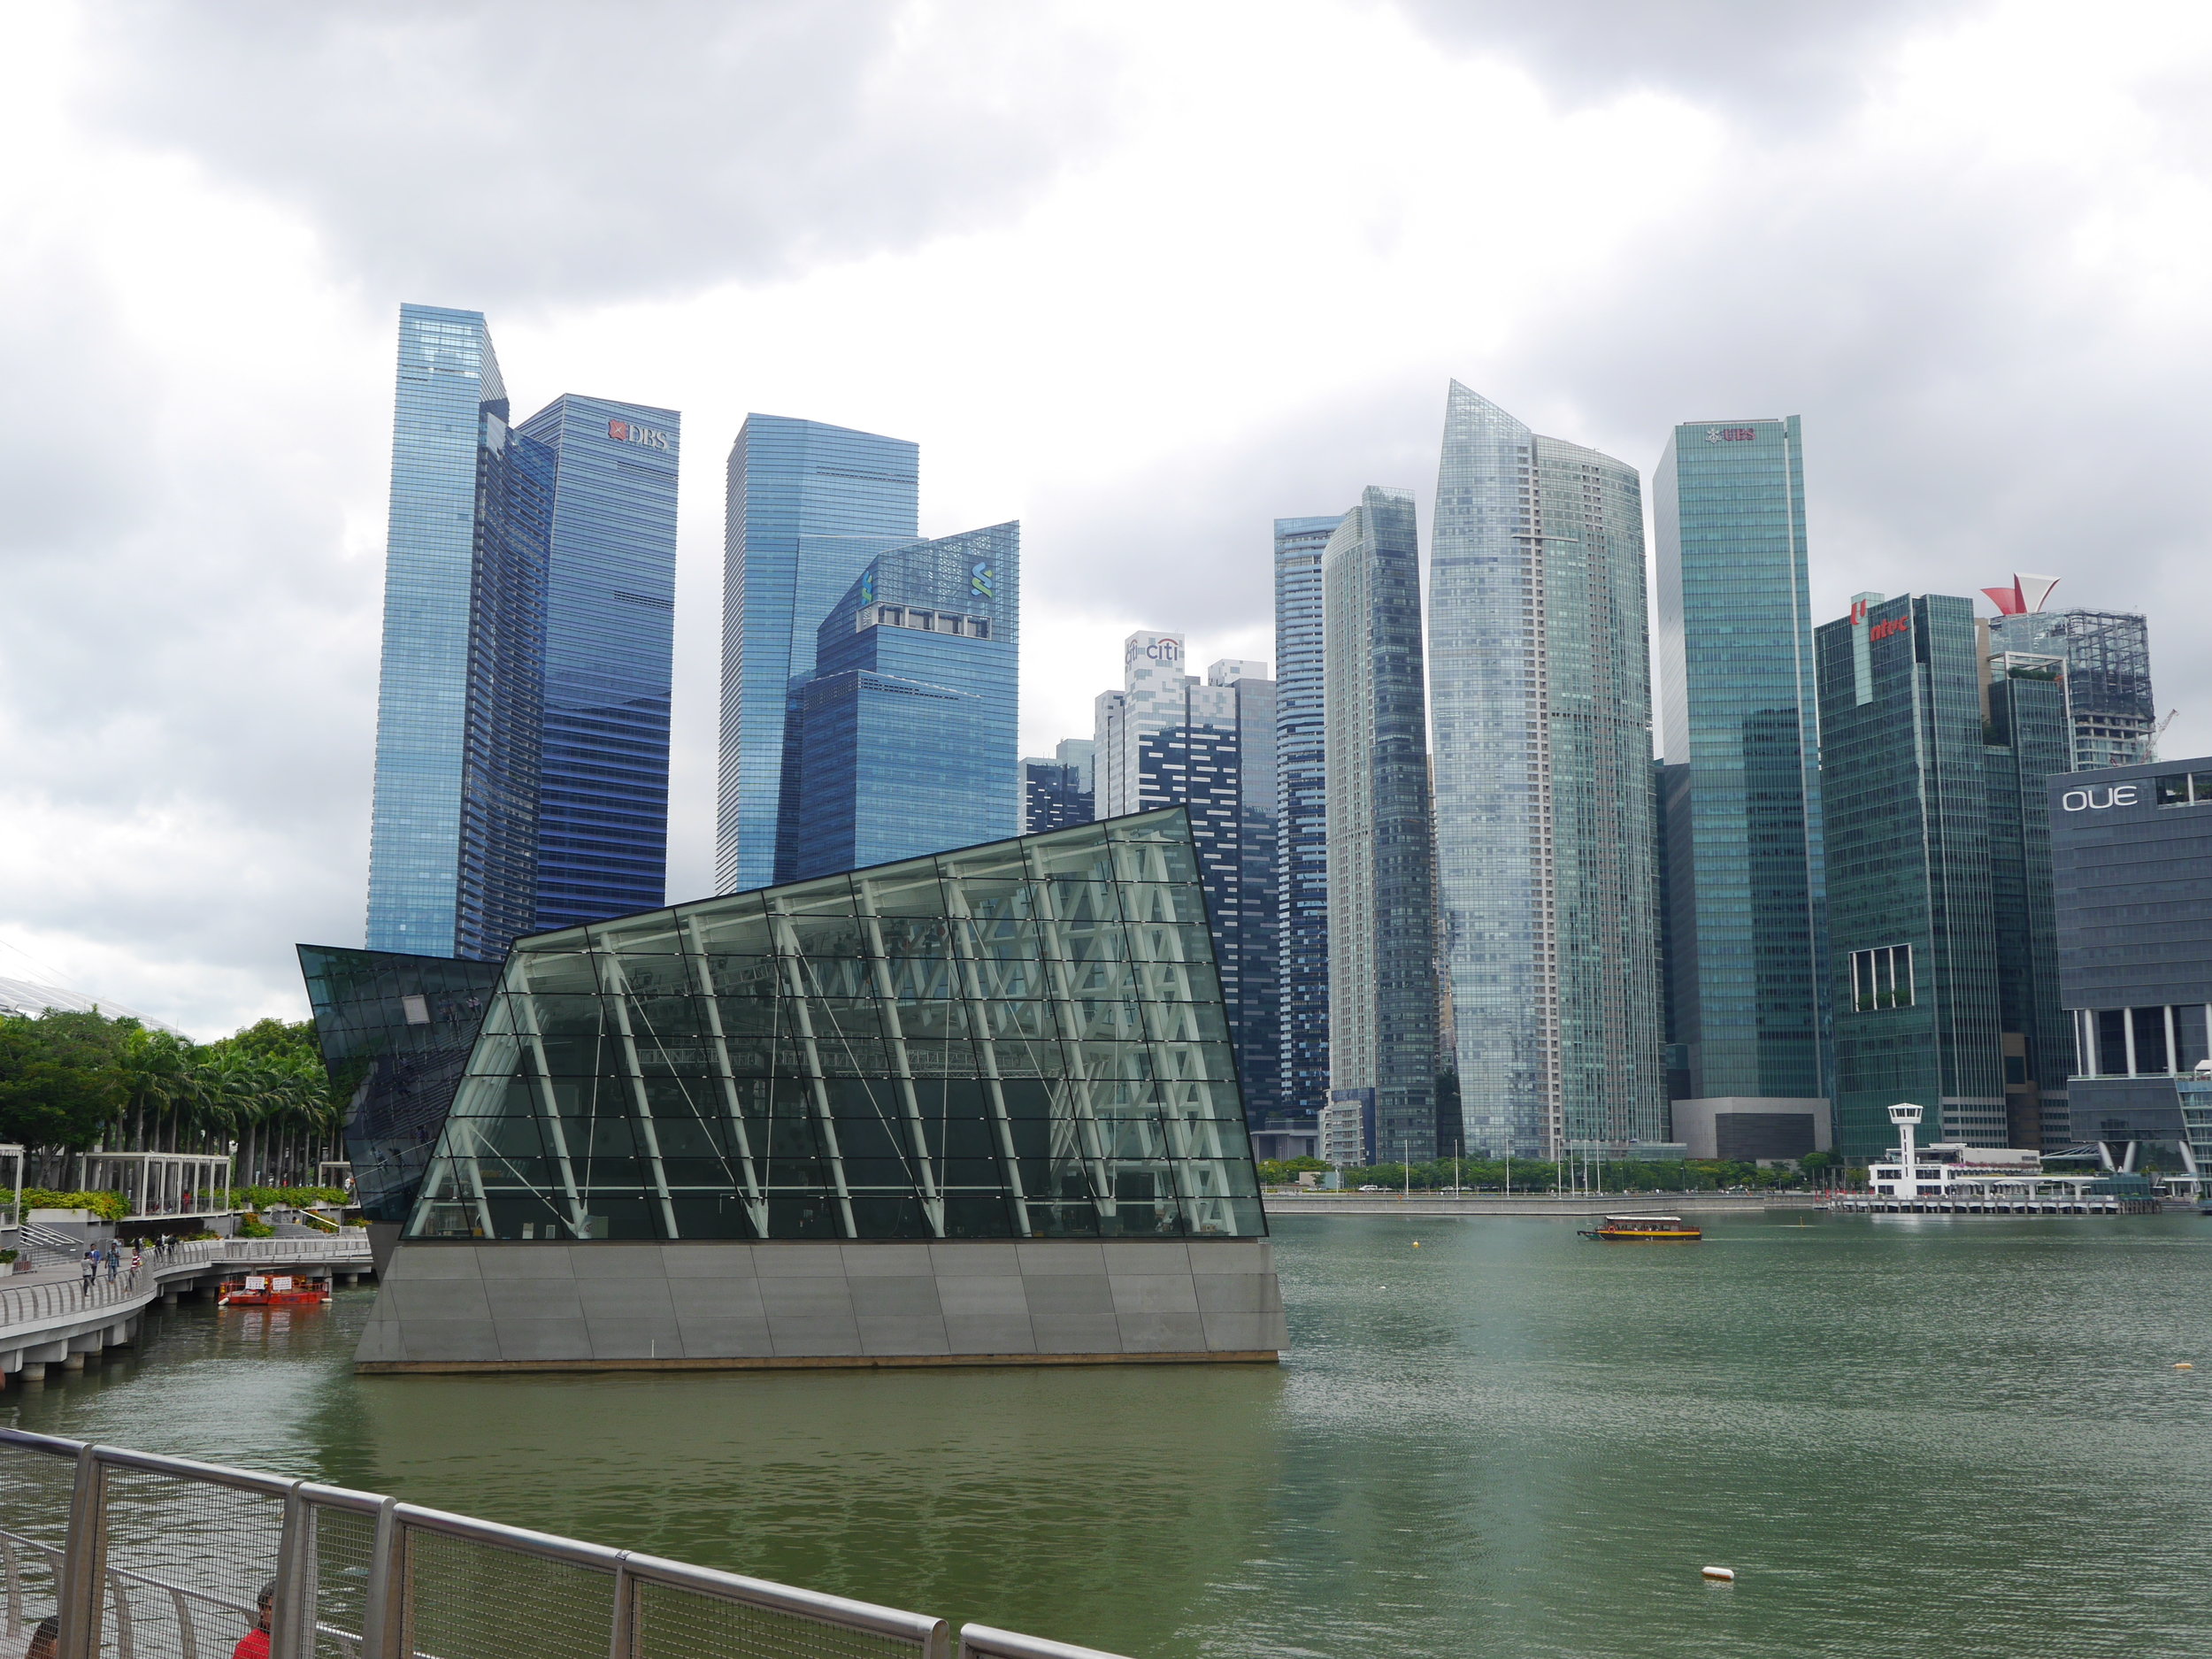 The Louis Vuitton building from another angle, and a portion of the Singapore skyline. I really love the blue color on the cluster of leftmost towers.